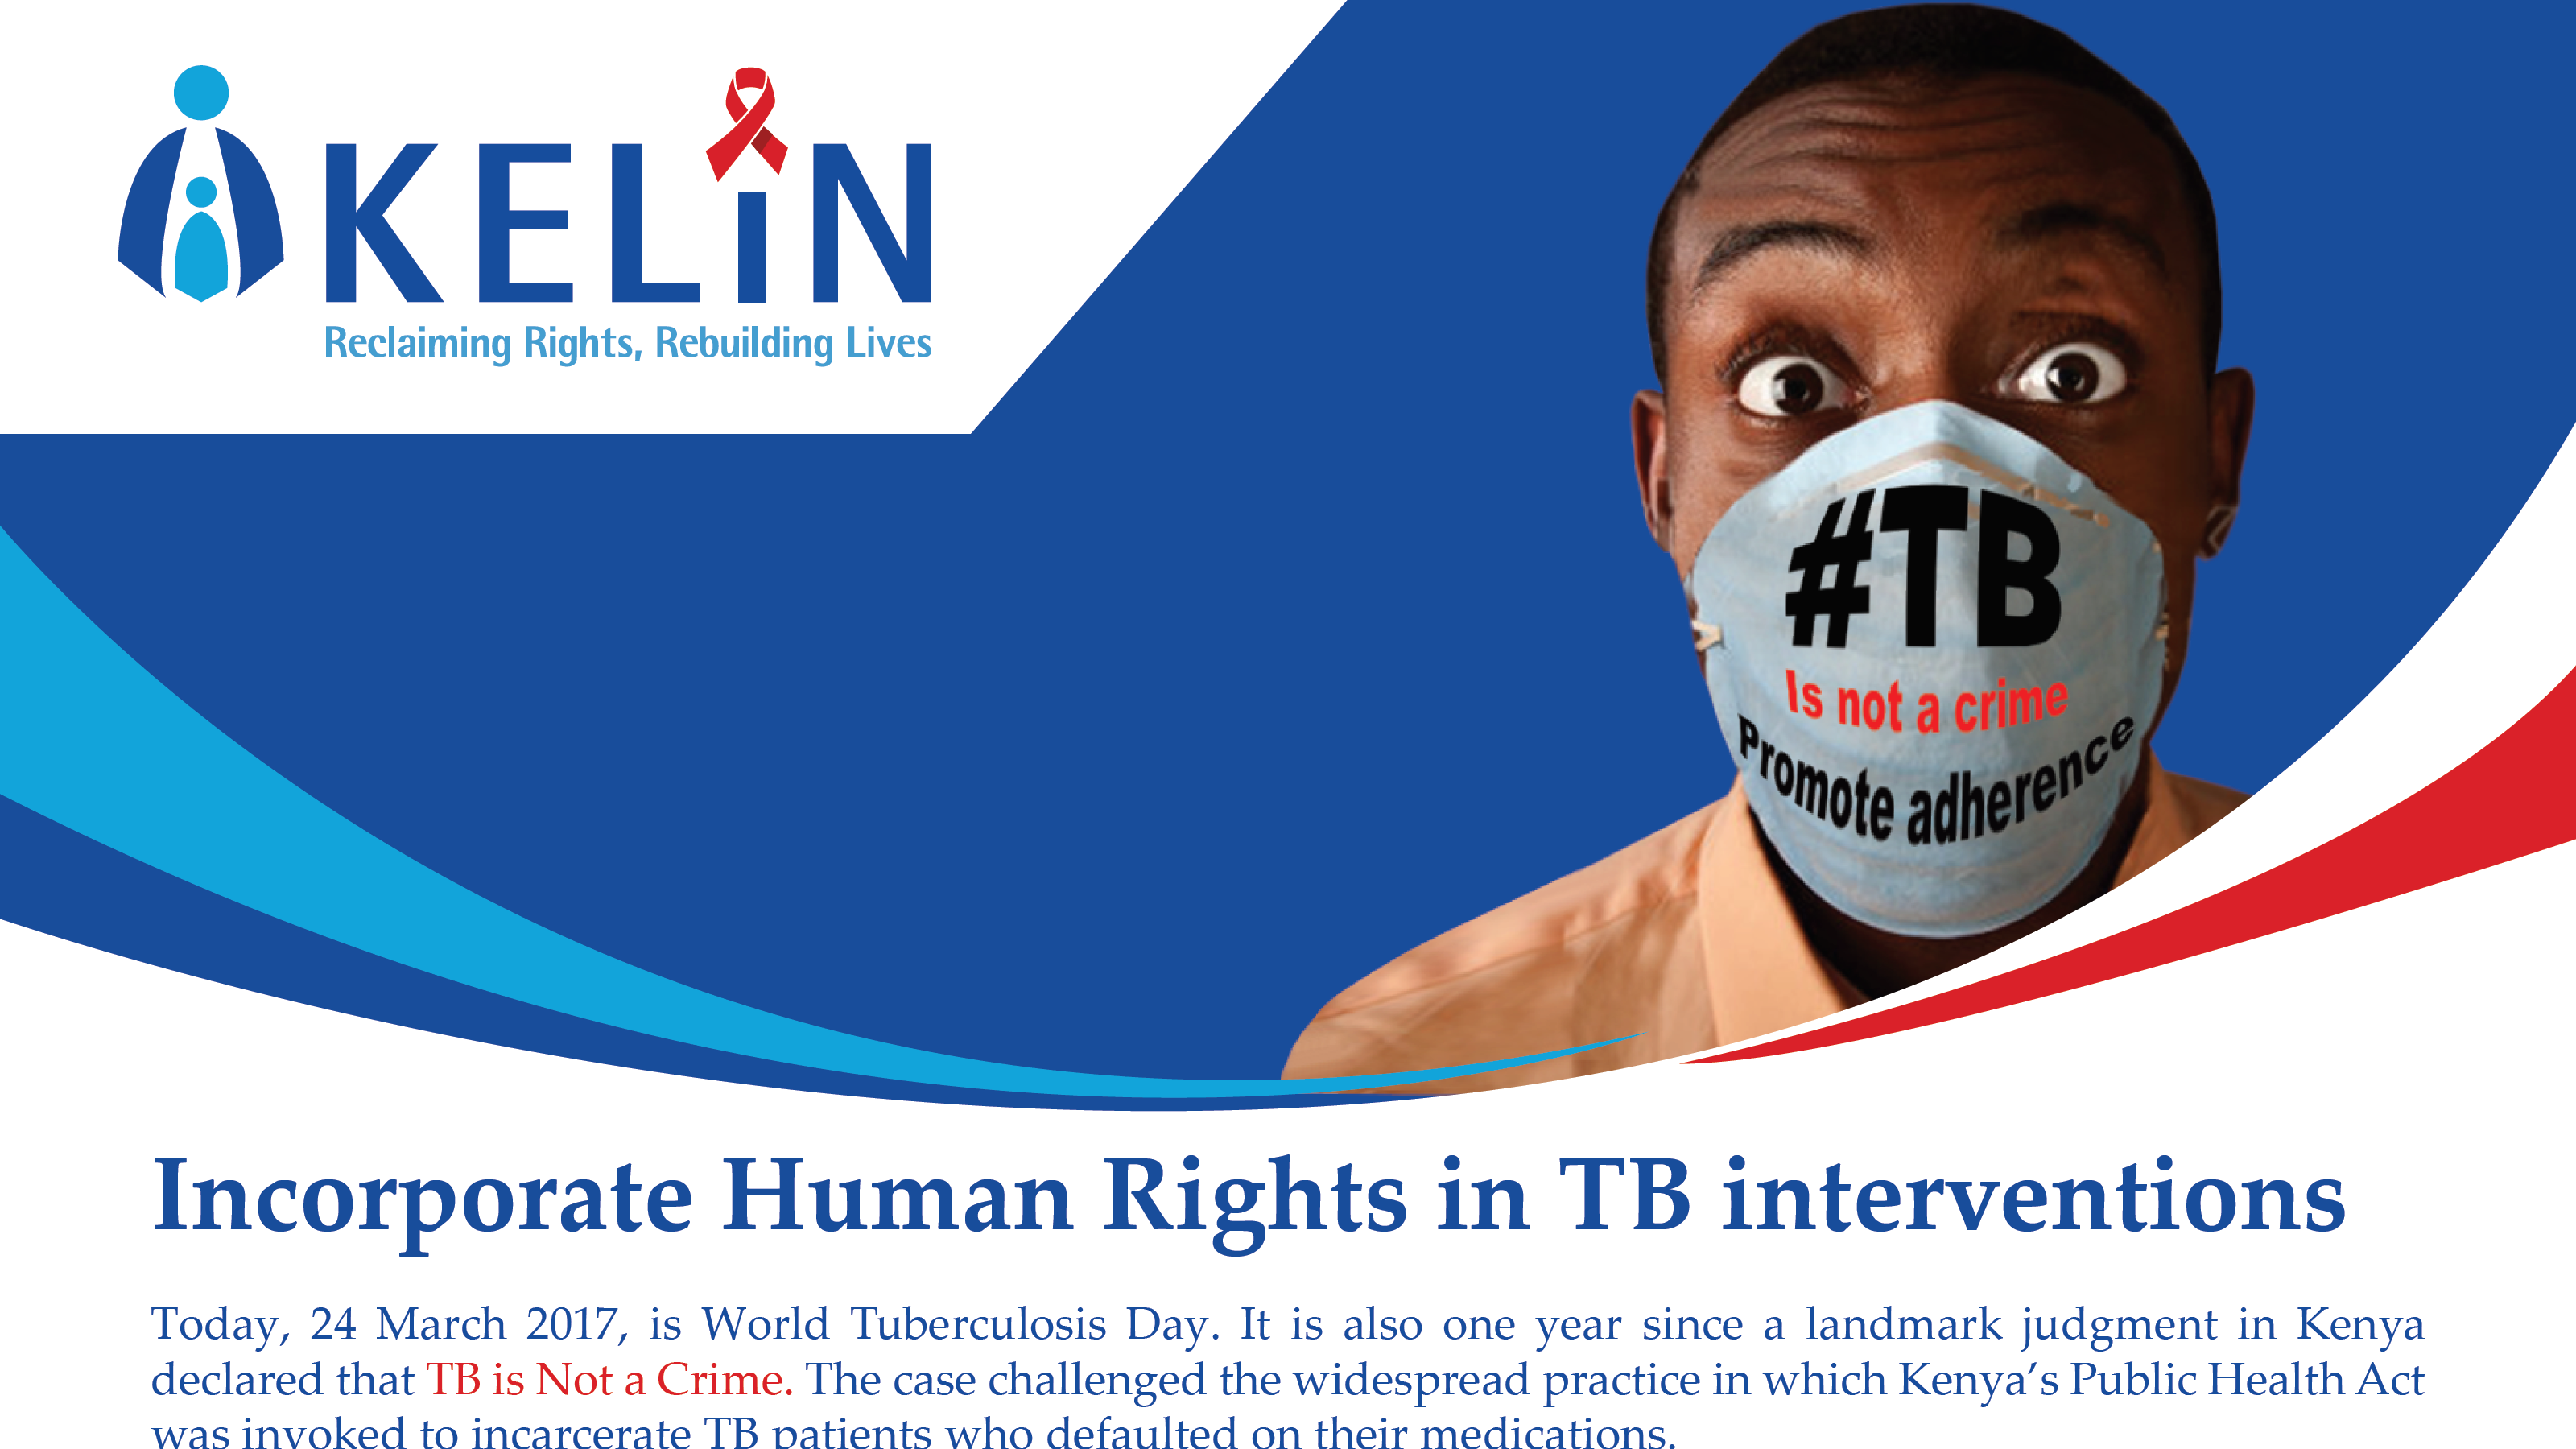 KELIN Calls for Incorporation of Human Rights in TB interventions